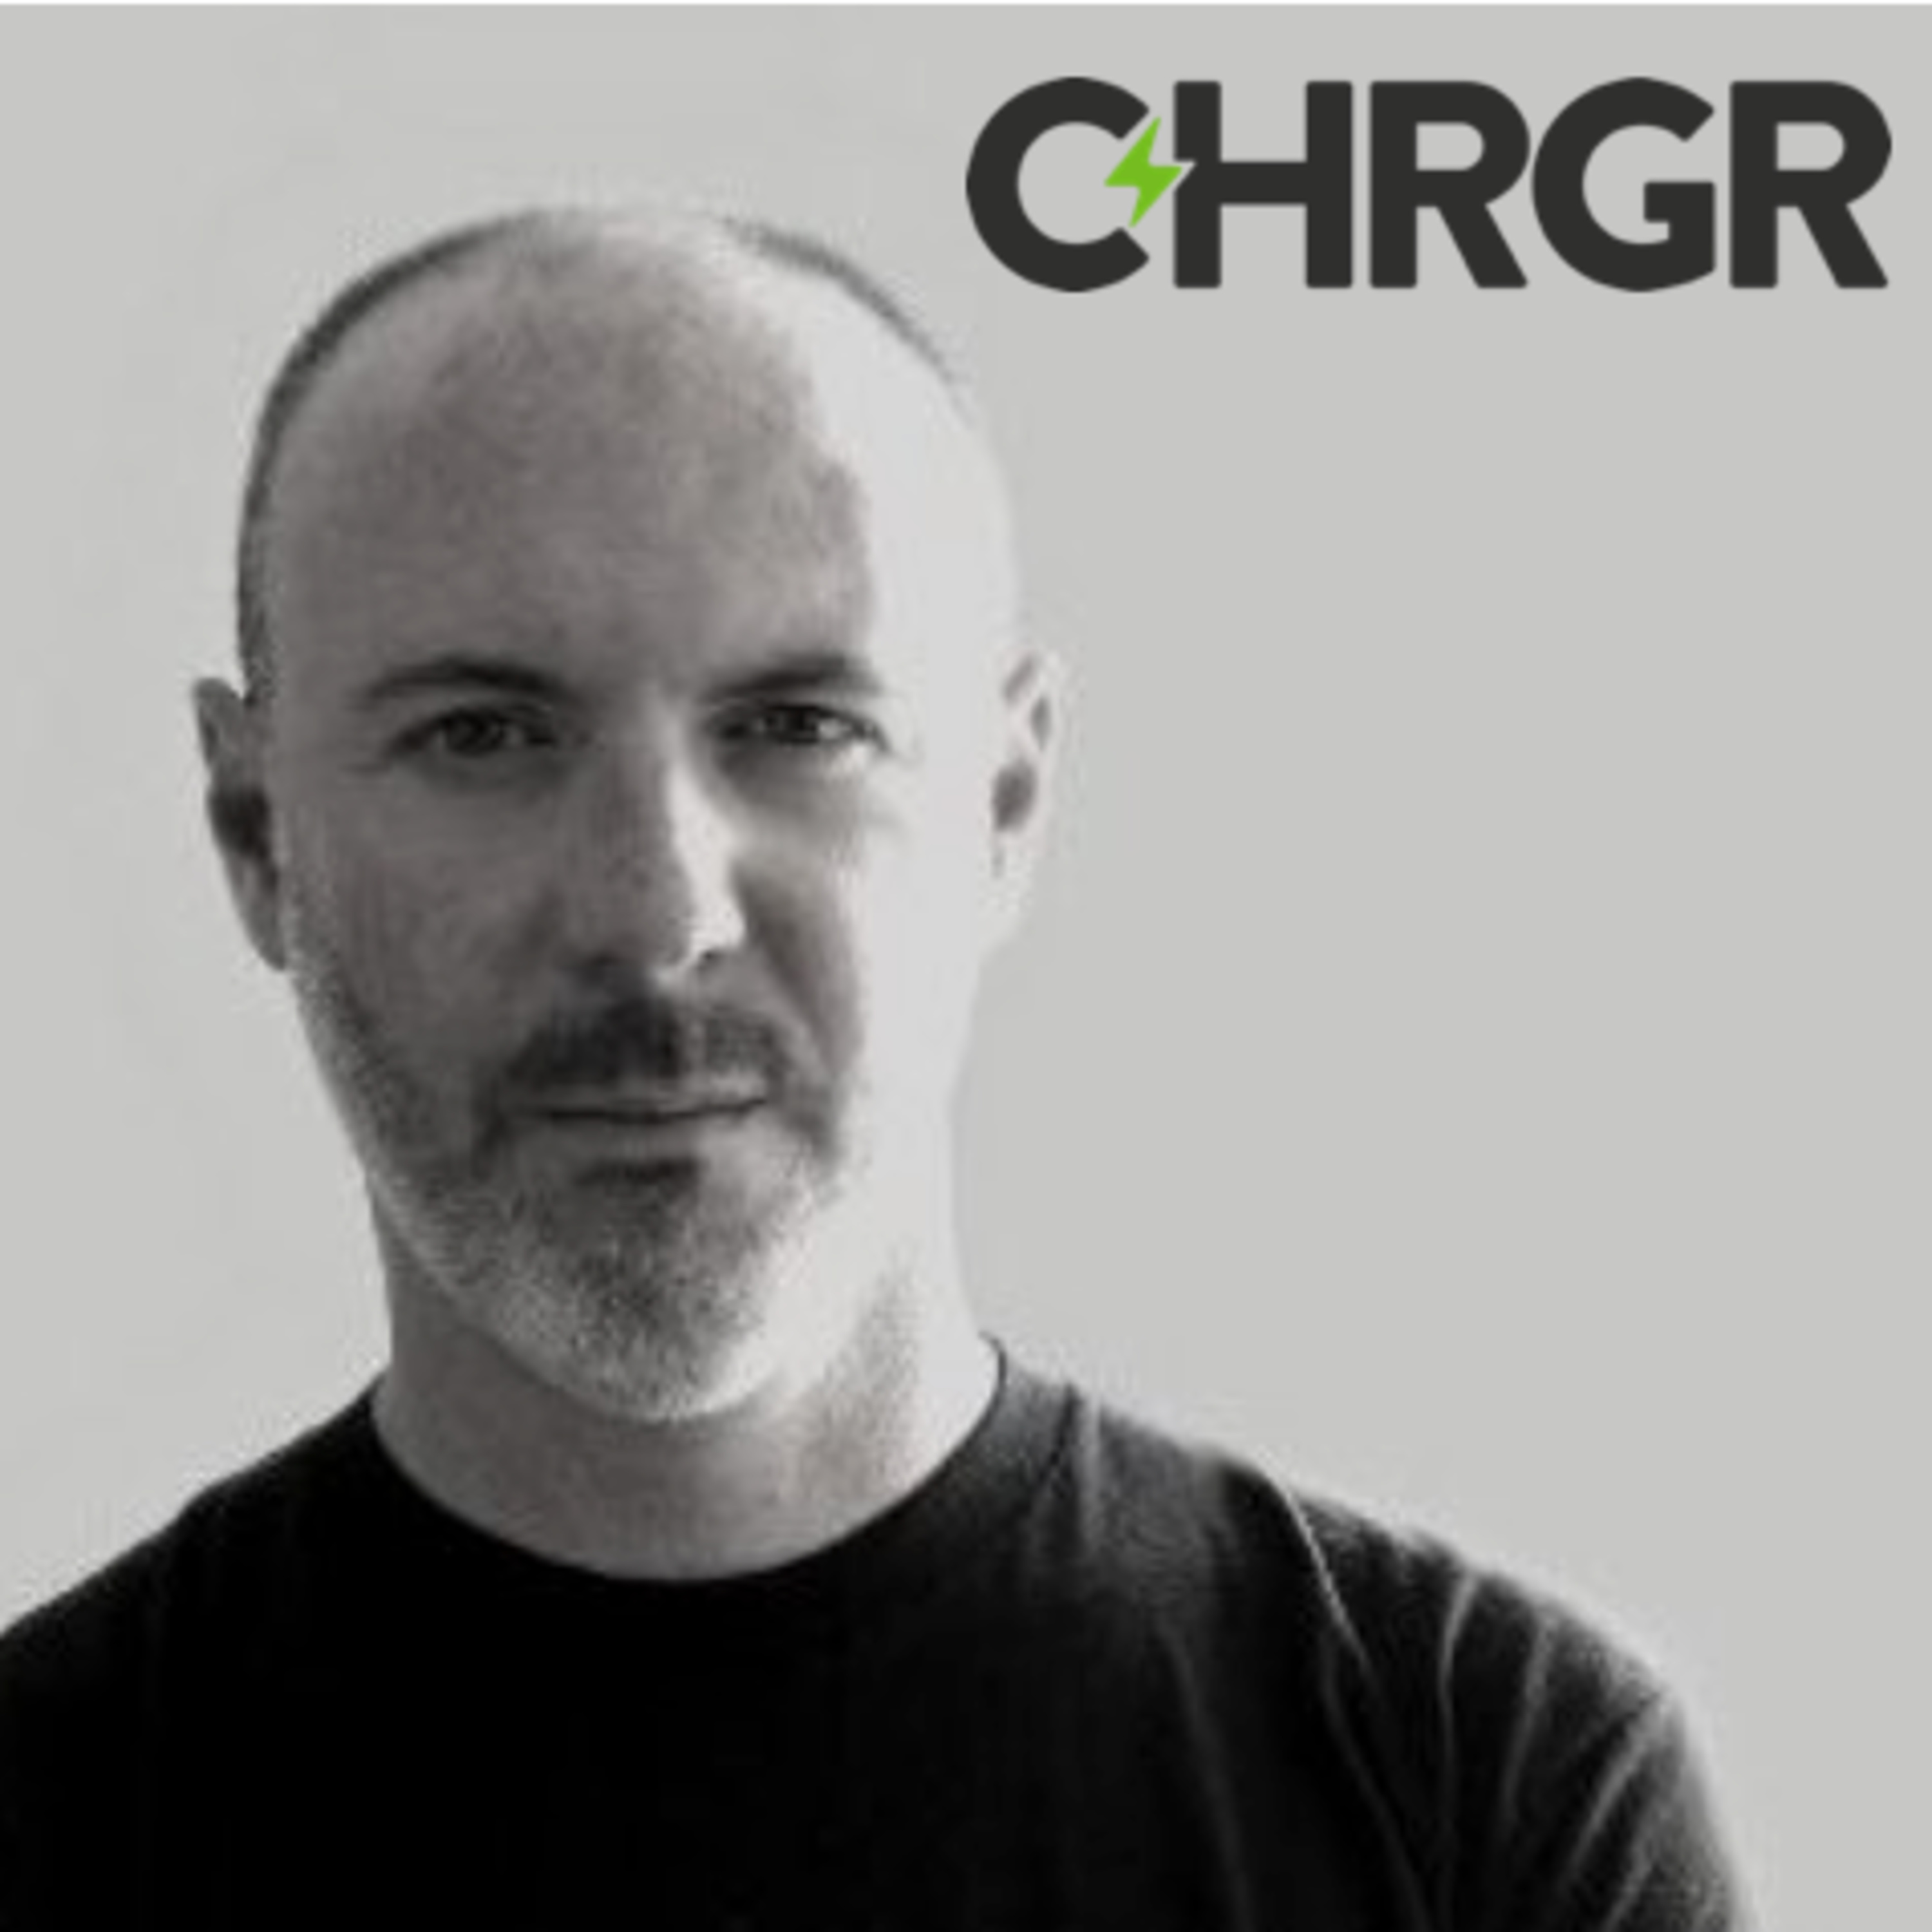 John Mullin, Founder of Chrgr, Ads You Want to Hold On To